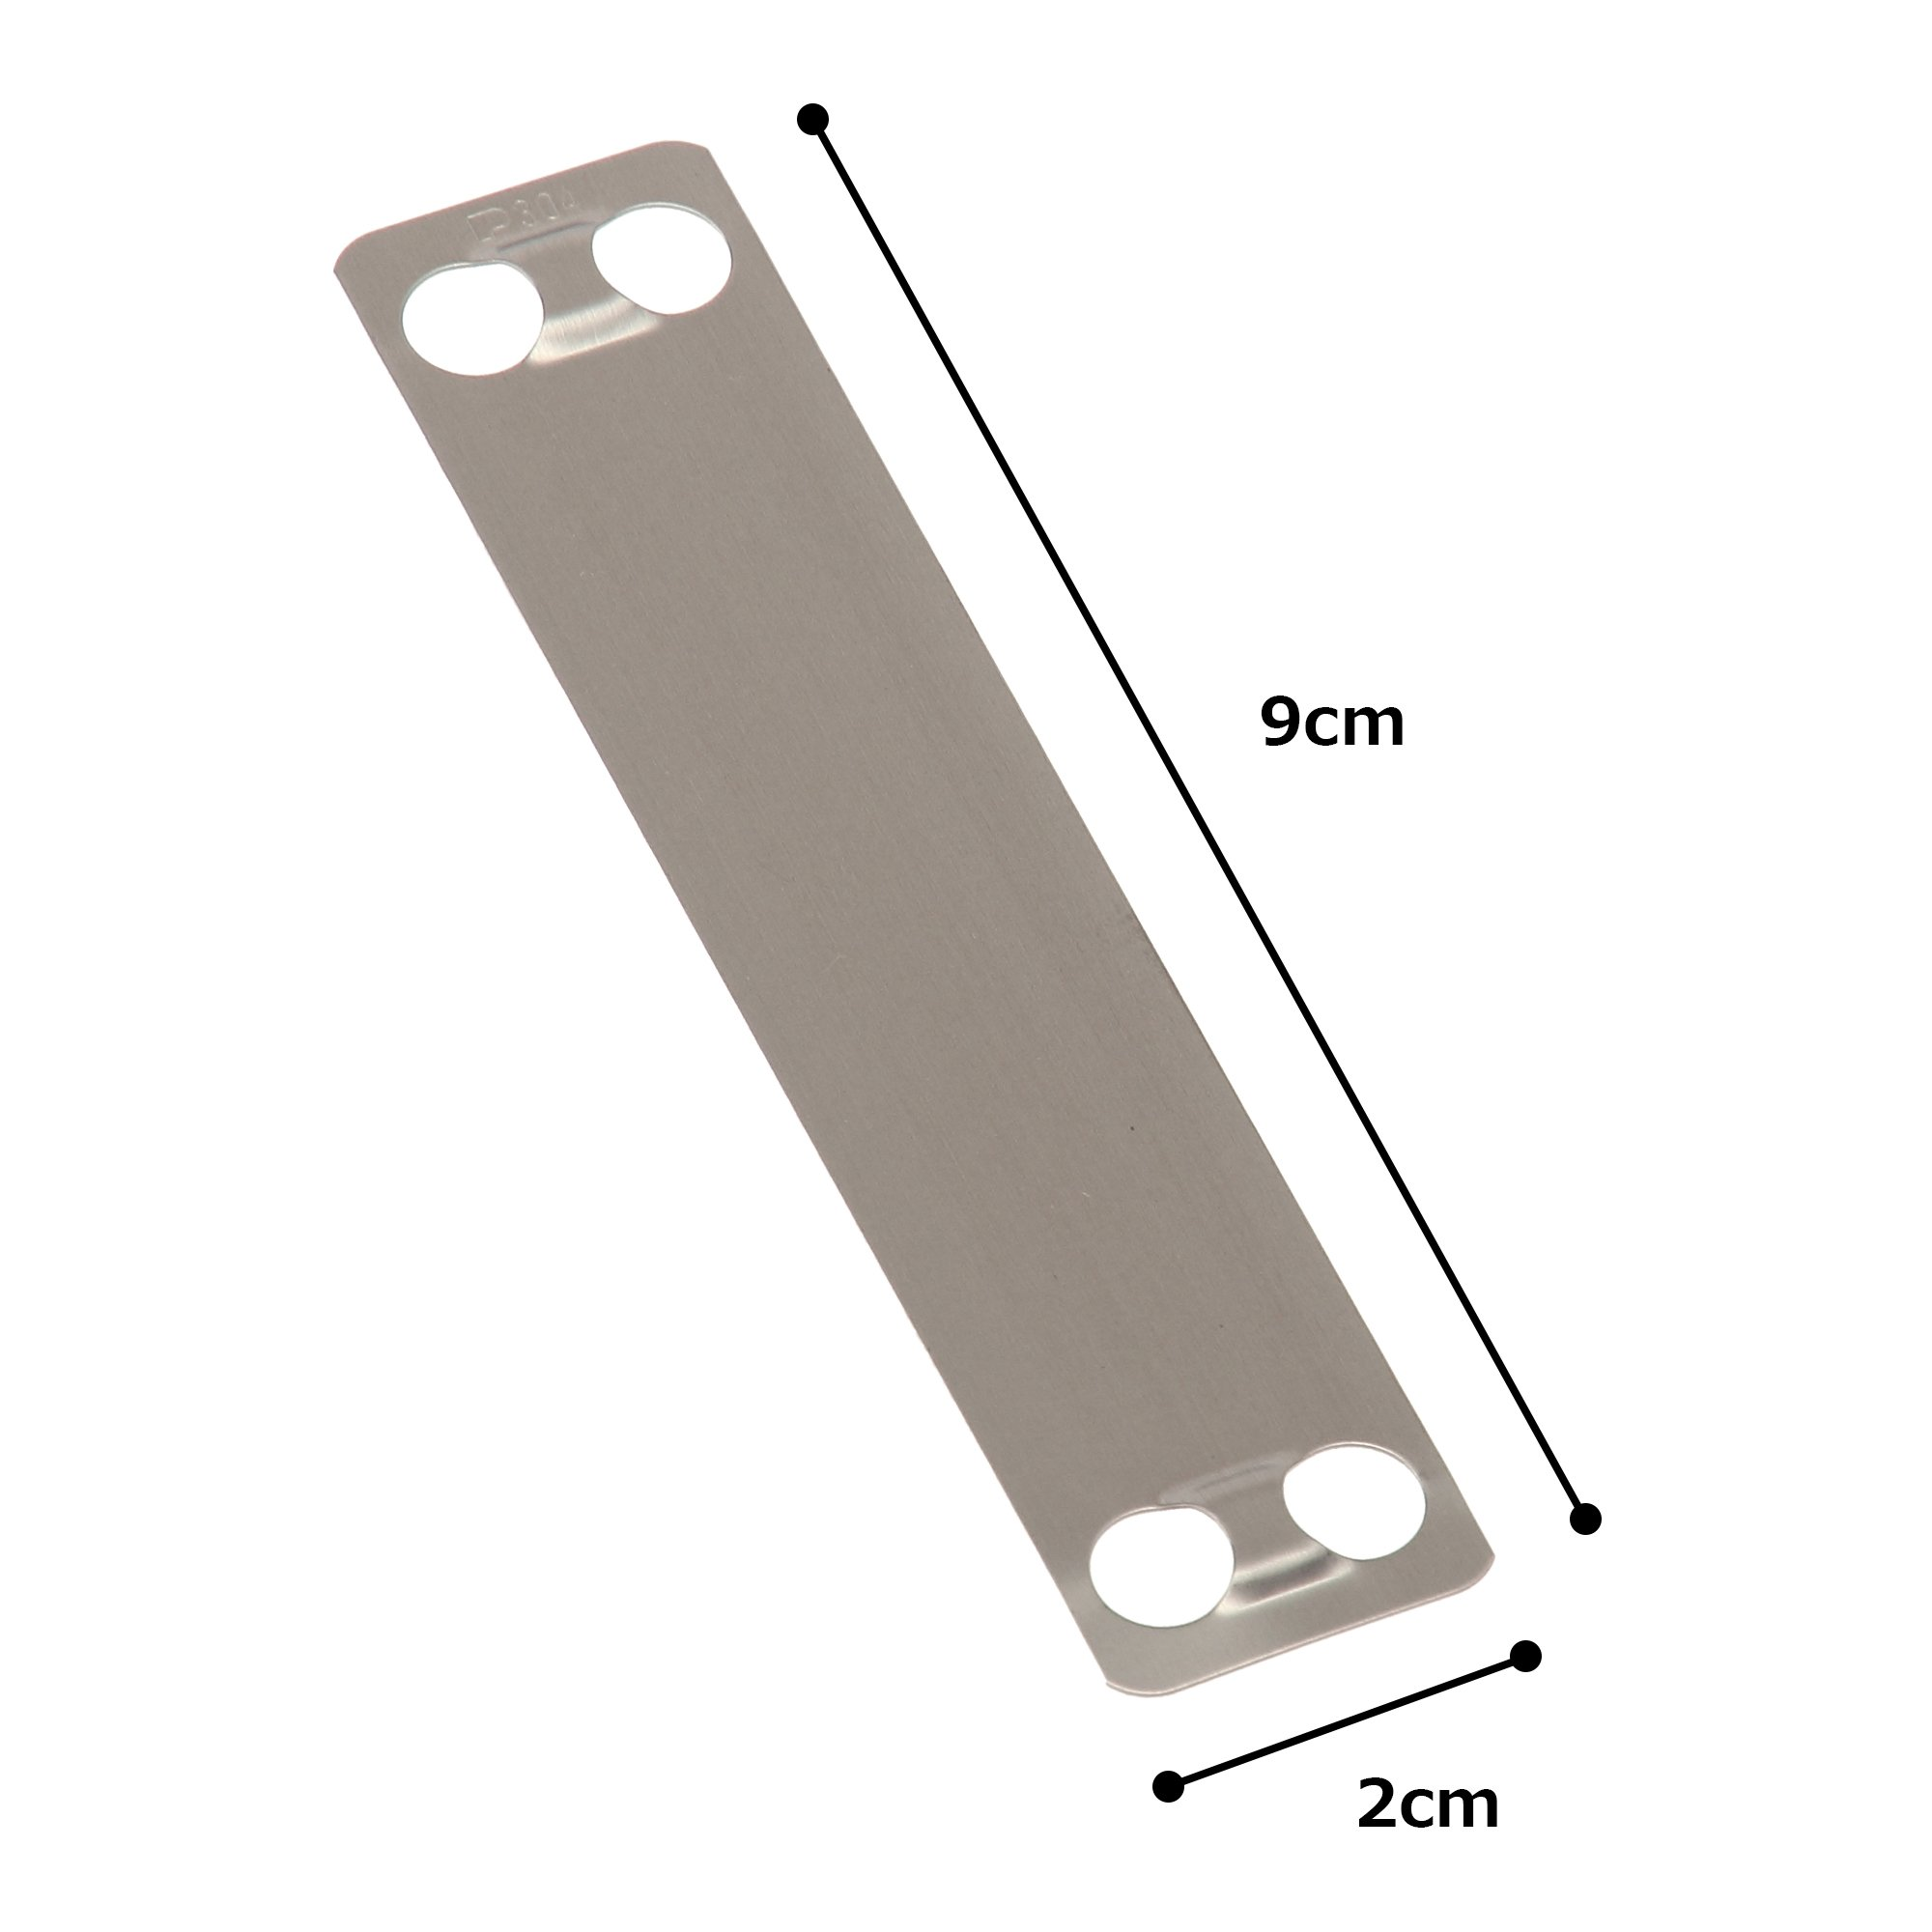 Panduit MMP350-C316 Marker Plate, 316 Stainless Steel, Natural Color (100-Pack) by Panduit (Image #4)